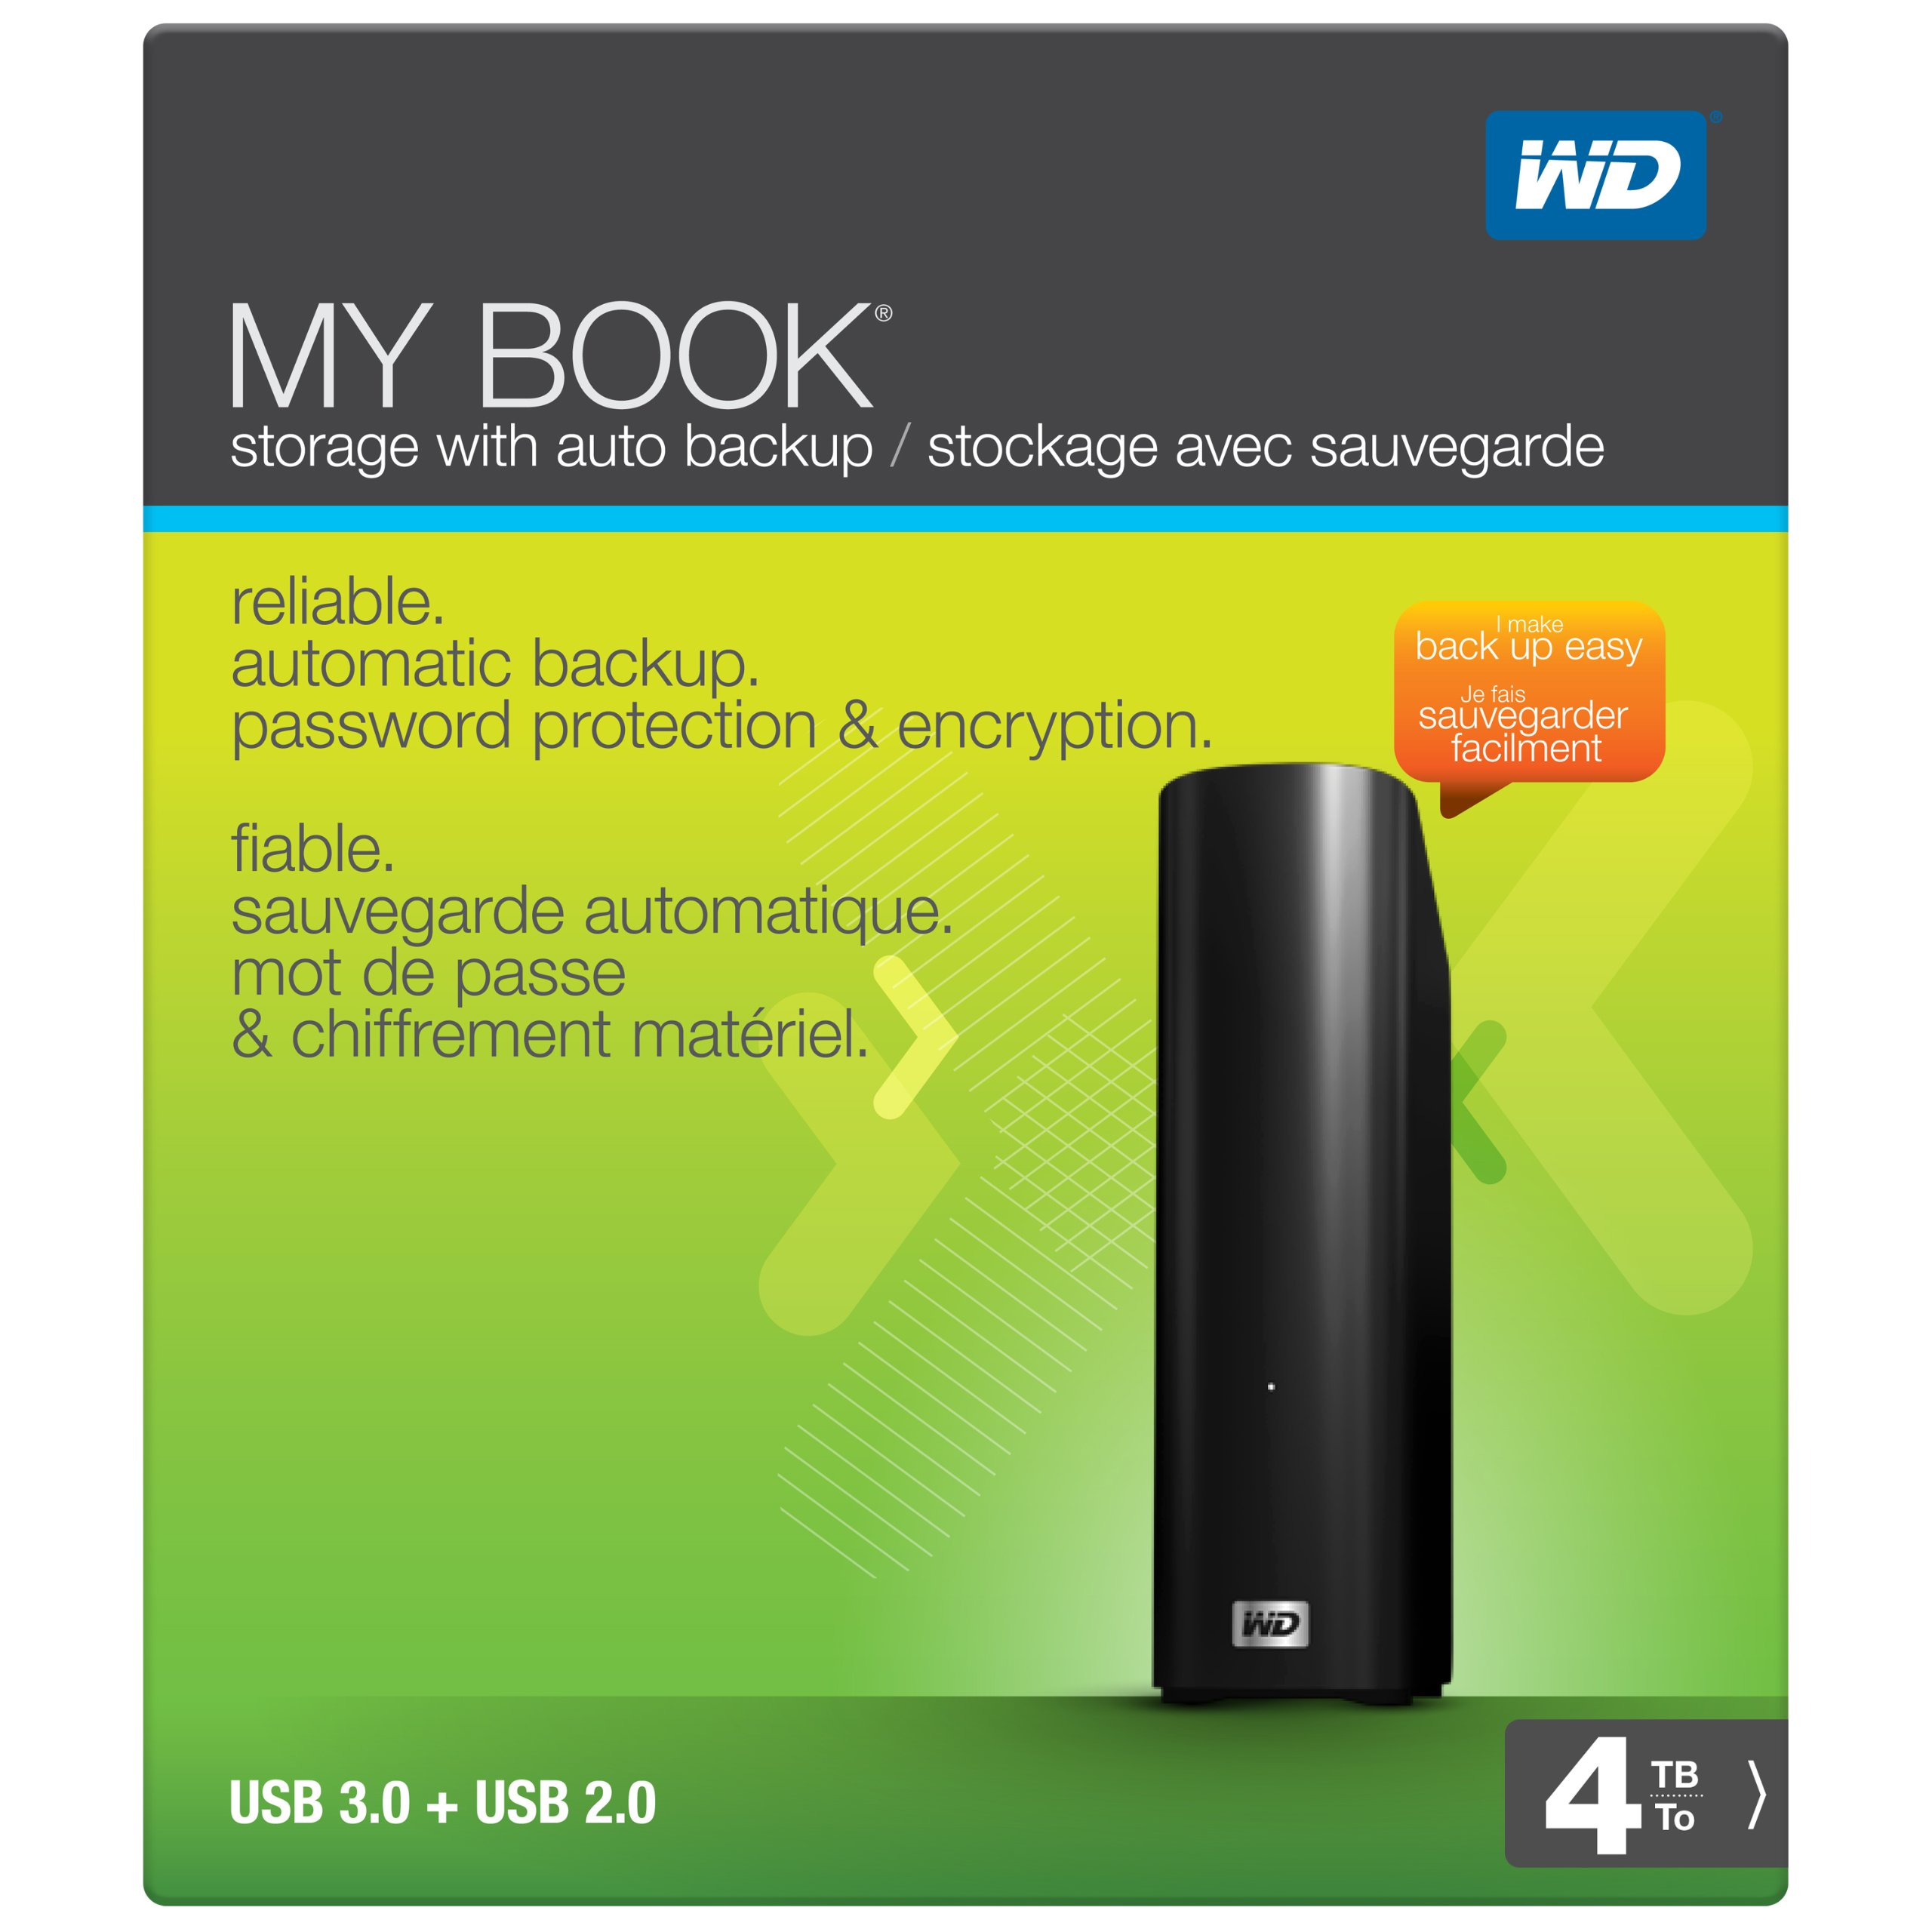 WD My Book 4TB External Hard Drive Storage USB 3.0 File Backup and Storage by Western Digital (Image #4)